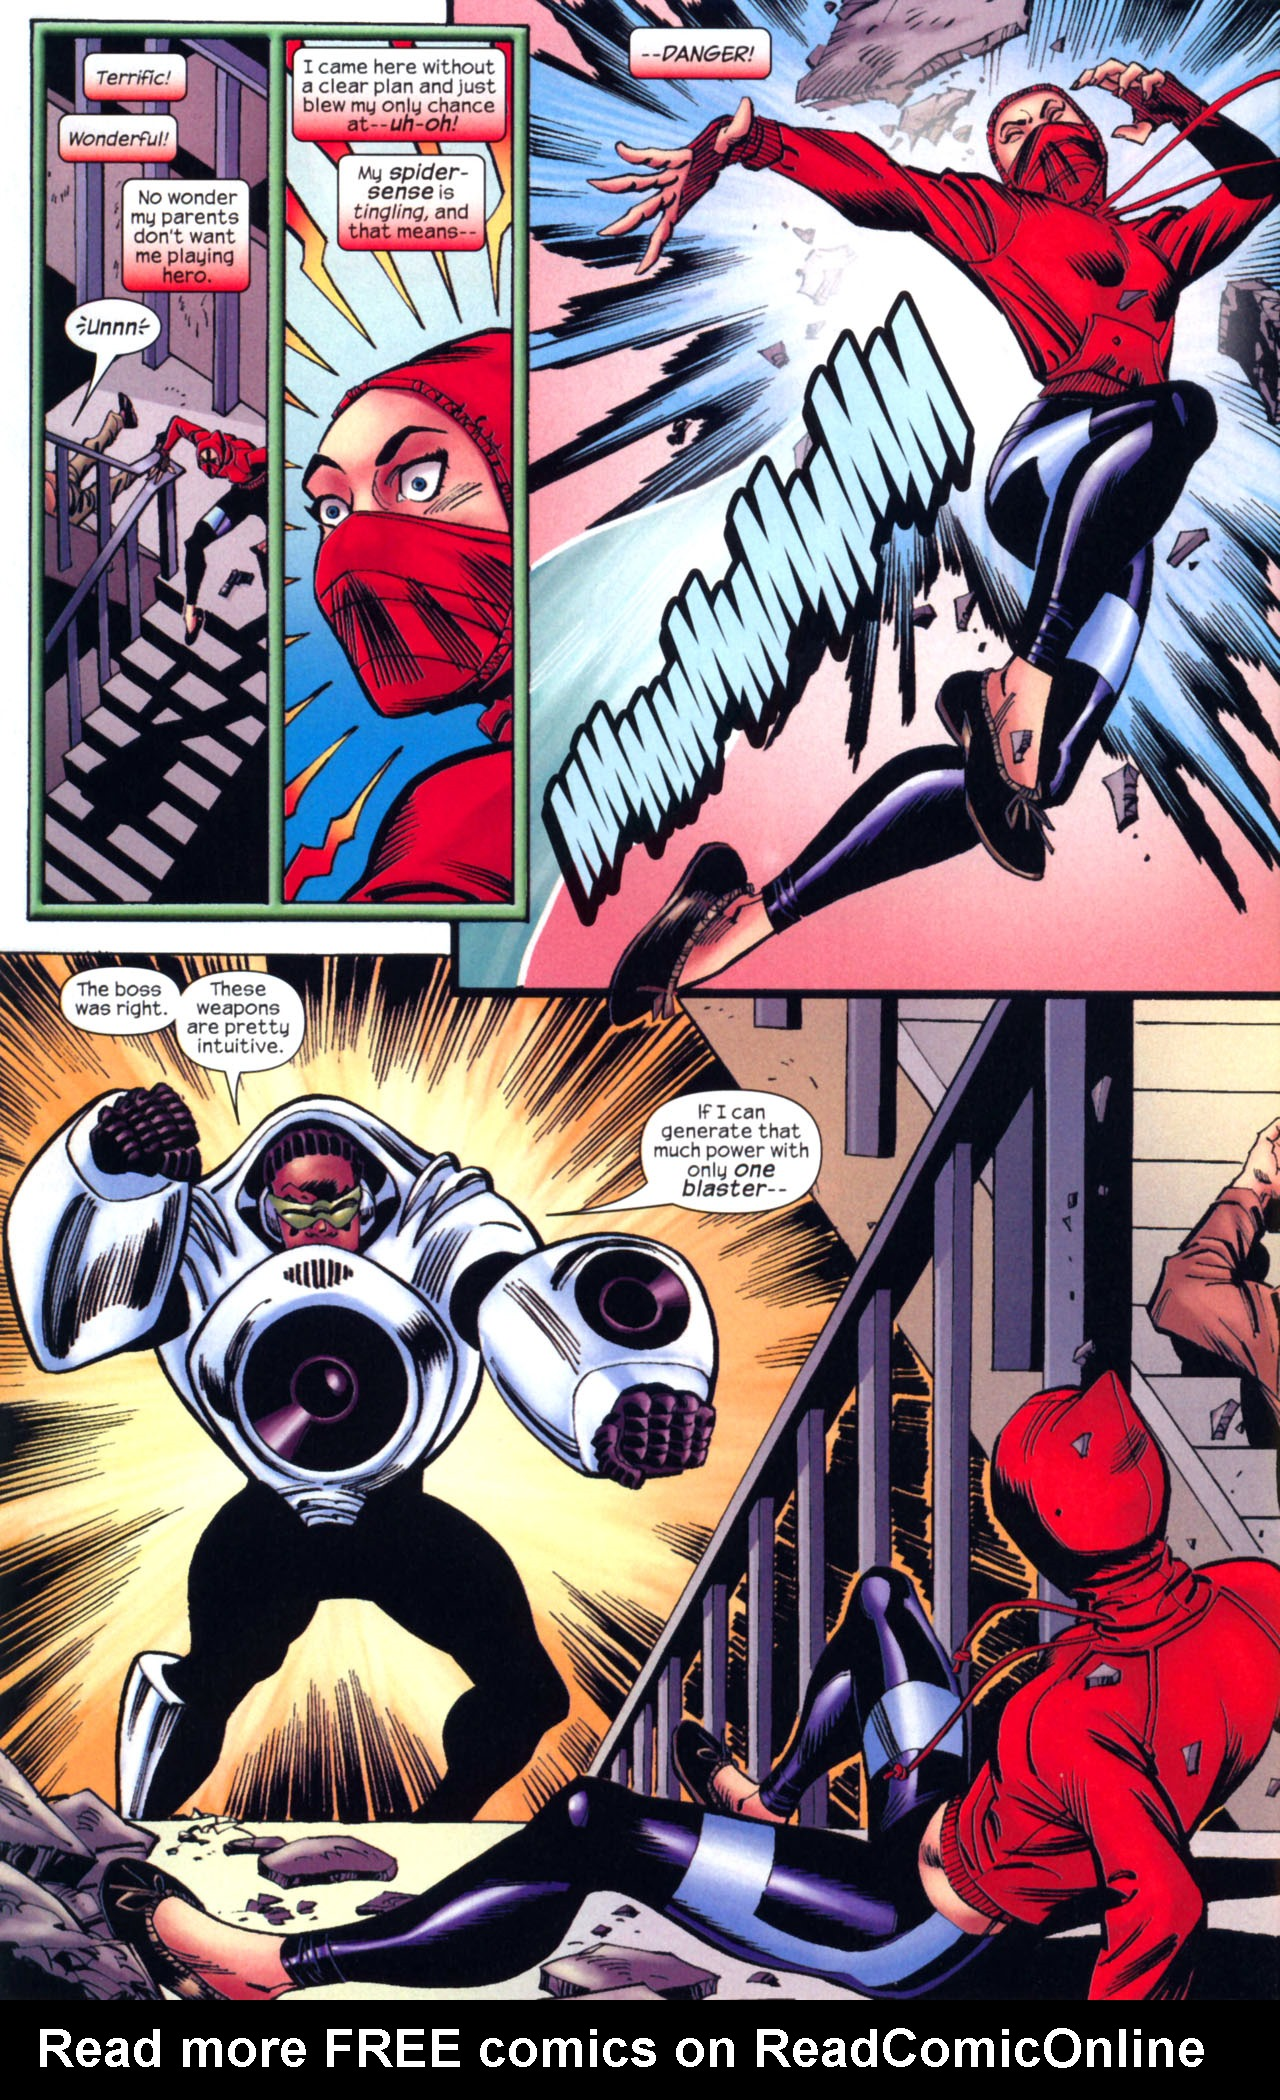 Read online Amazing Spider-Girl comic -  Issue #2 - 10